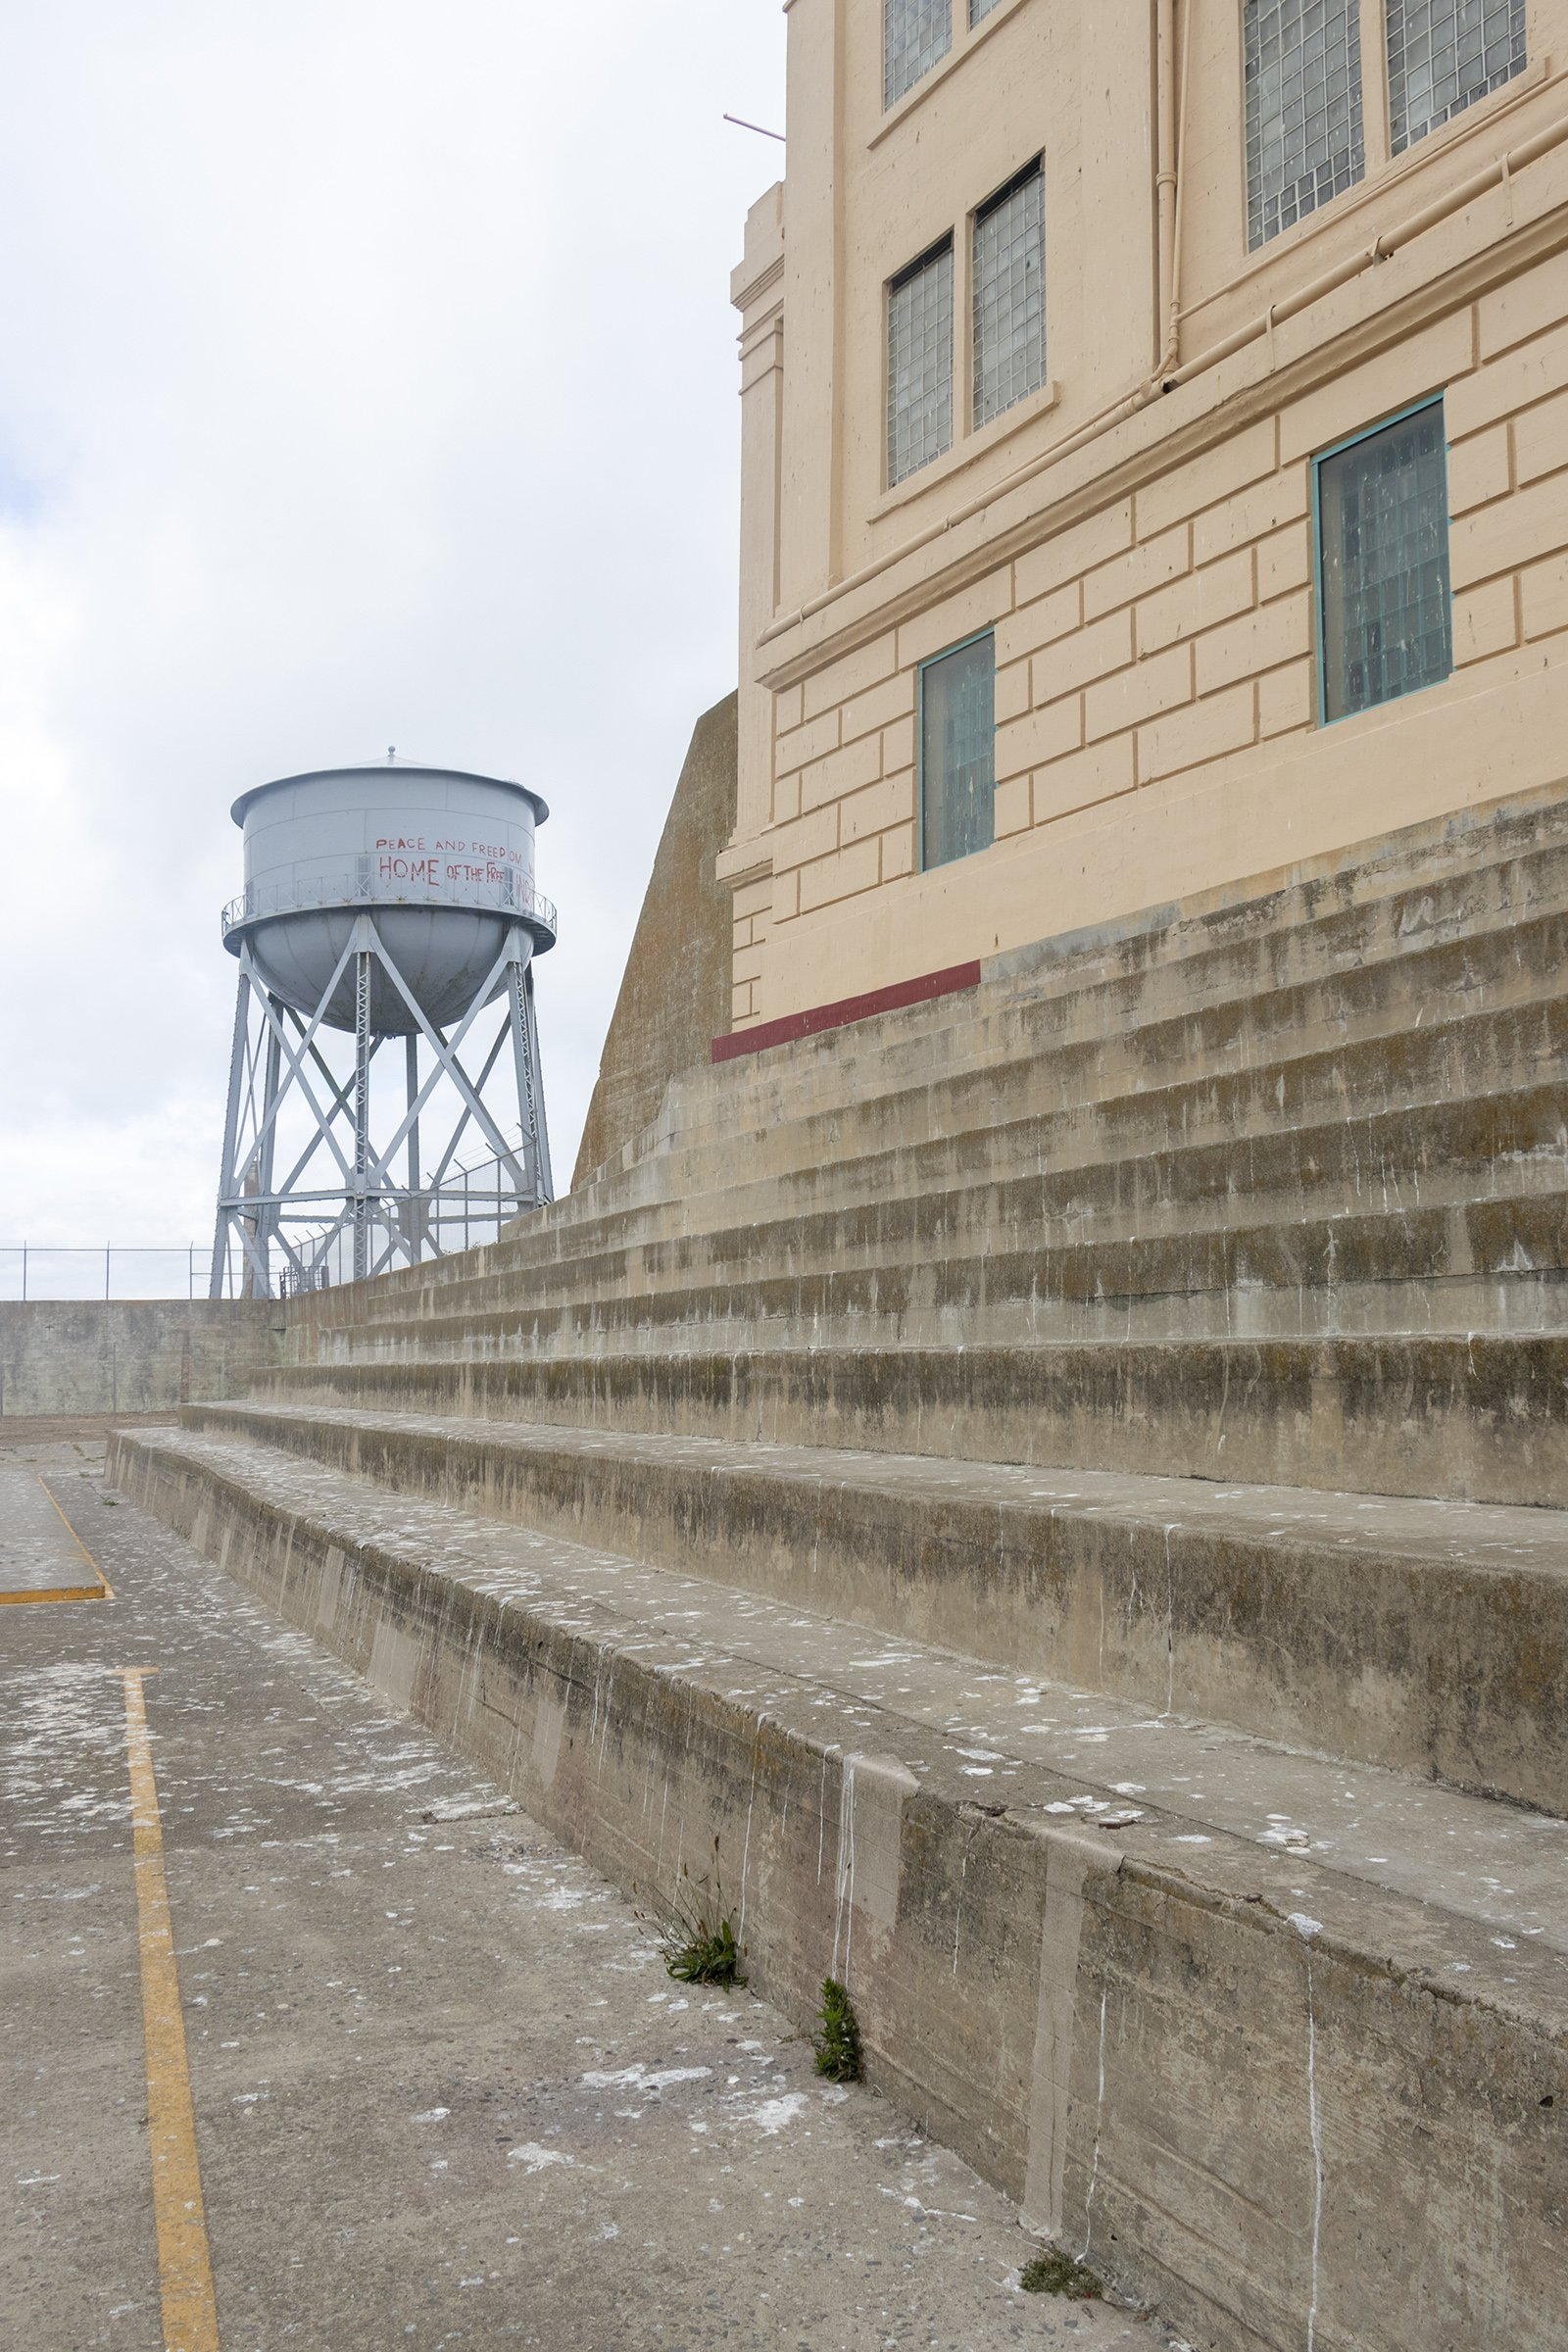 Alcatraz recreation yard and water tower